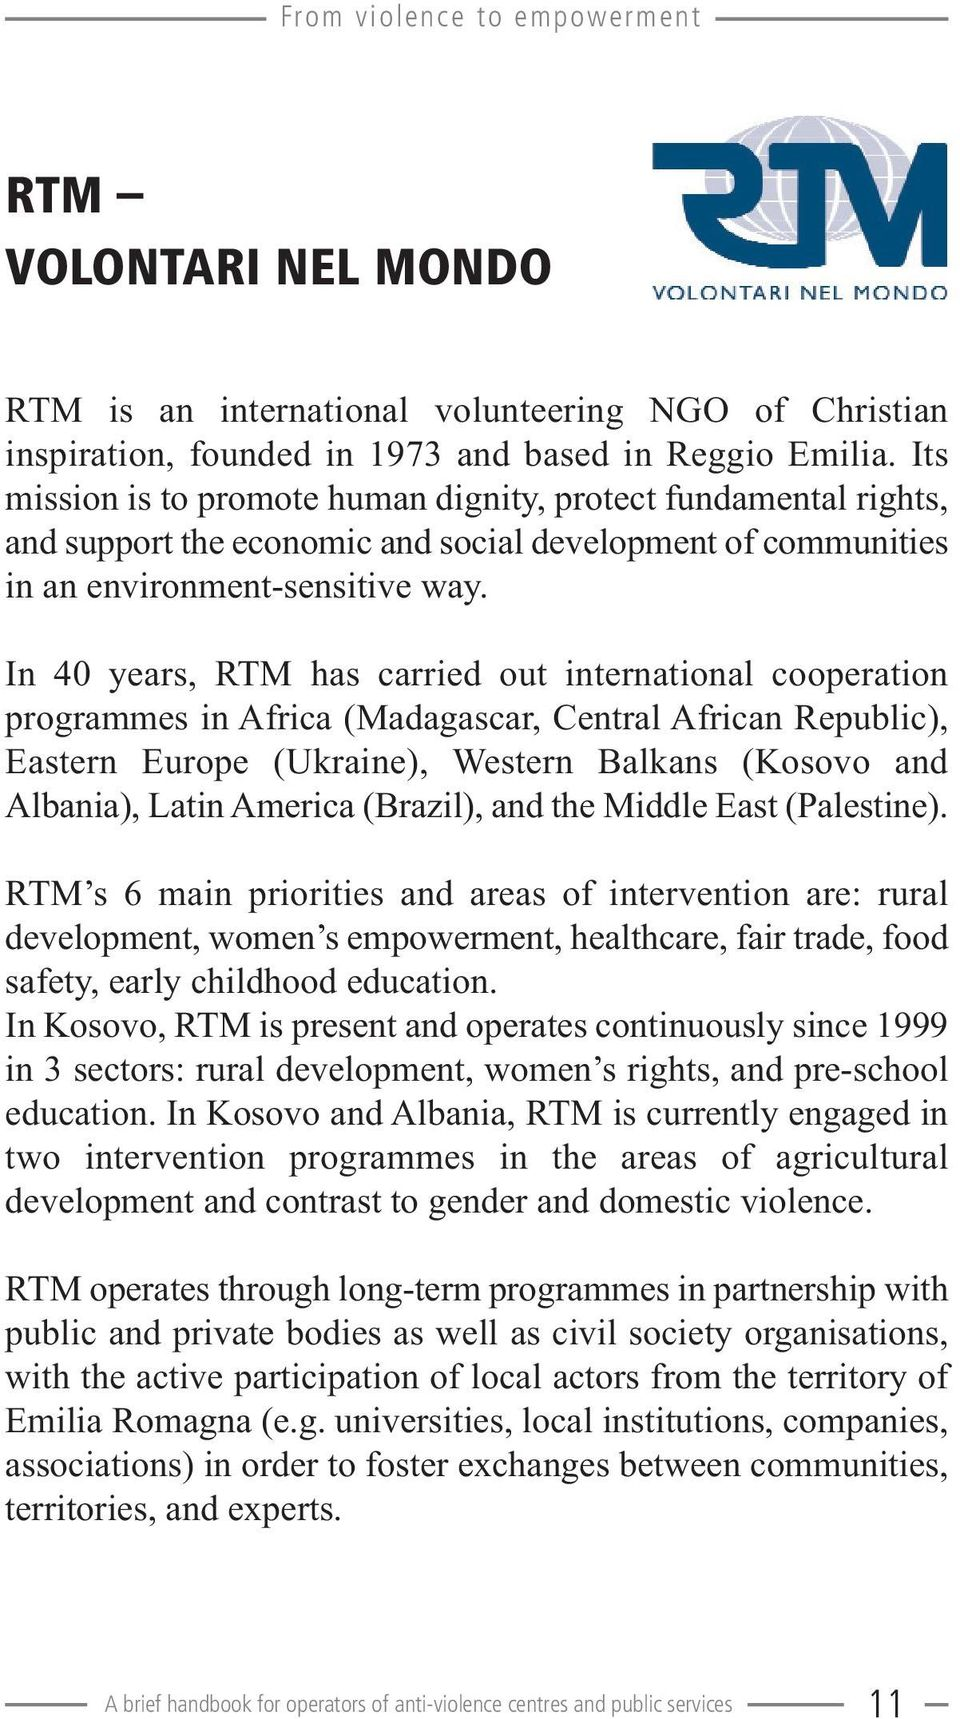 In 40 years, RTM has carried out international cooperation programmes in Africa (Madagascar, Central African Republic), Eastern Europe (Ukraine), Western Balkans (Kosovo and Albania), Latin America